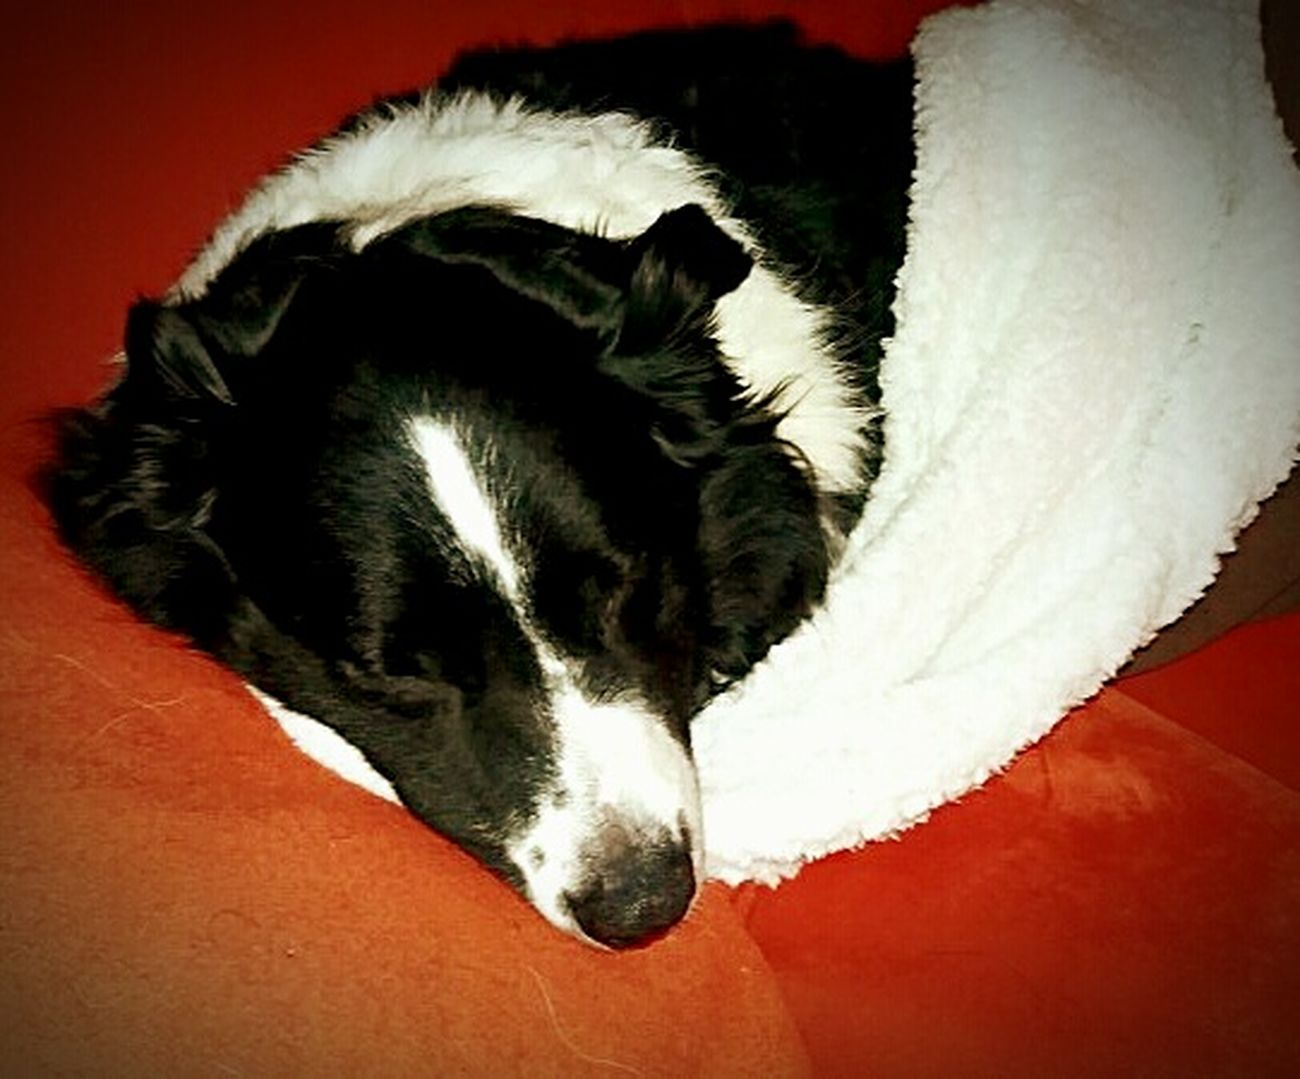 Animal Themes Black Color Sleeping Animal At Home Animal Head  Pets Dog Border Collie Australienshepard Relaxation Sofa Blackandwhite